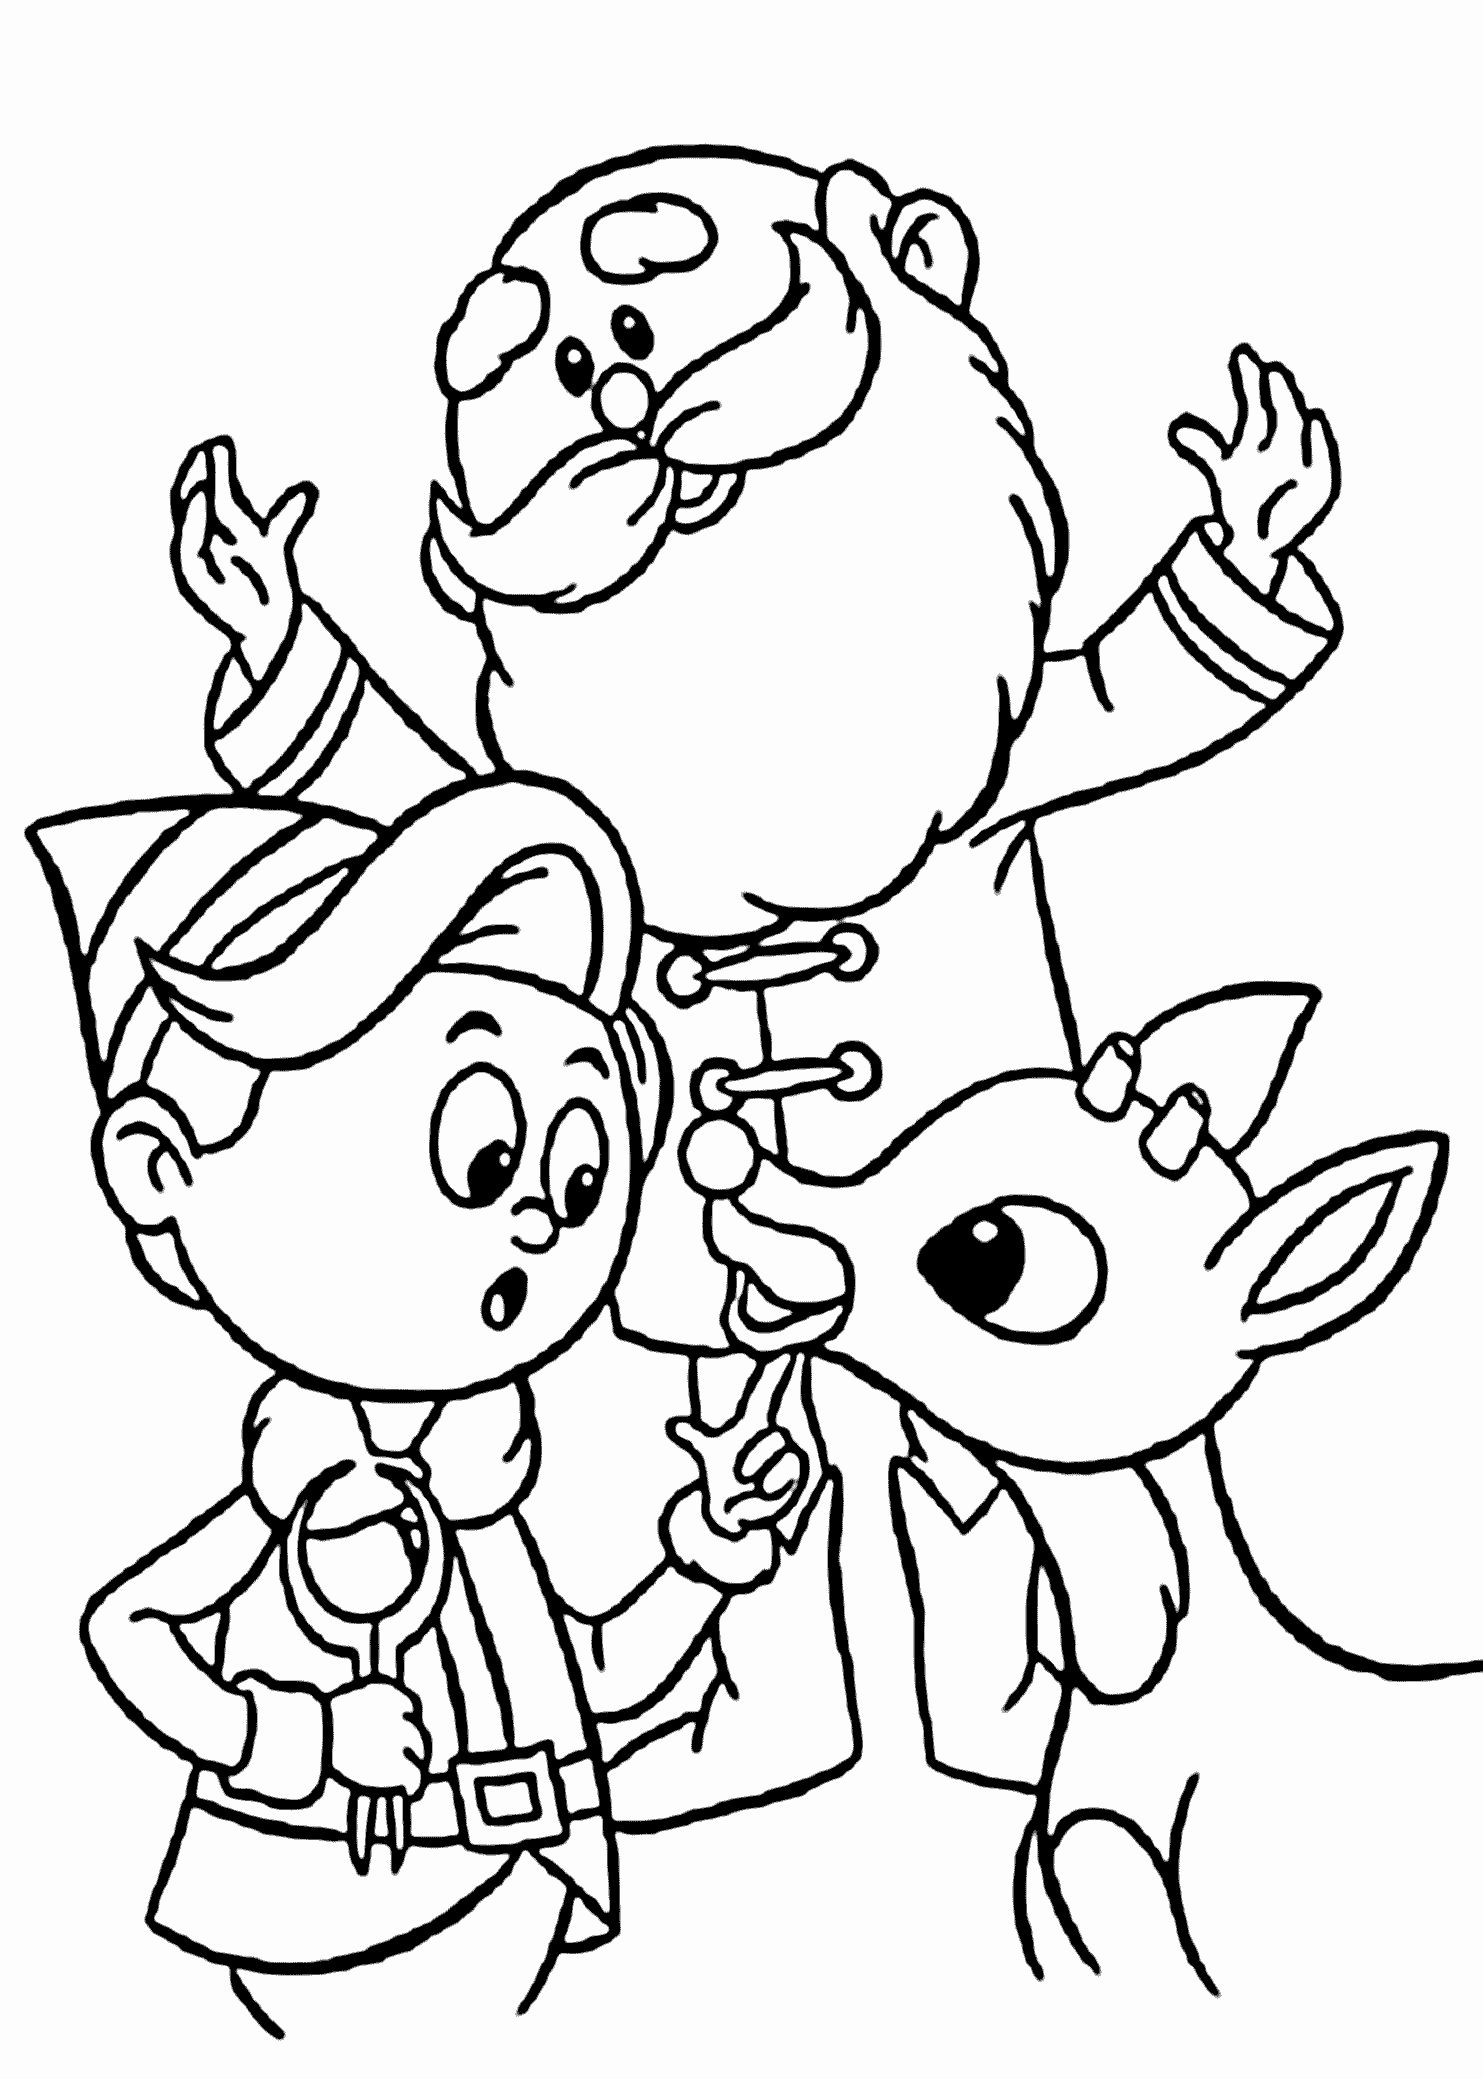 Christmas Coloring Sheets Rudolph Awesome Coloring Books Coloring Sheet Christmas Santa 0 Rudolph Coloring Pages Santa Coloring Pages Christmas Coloring Sheets